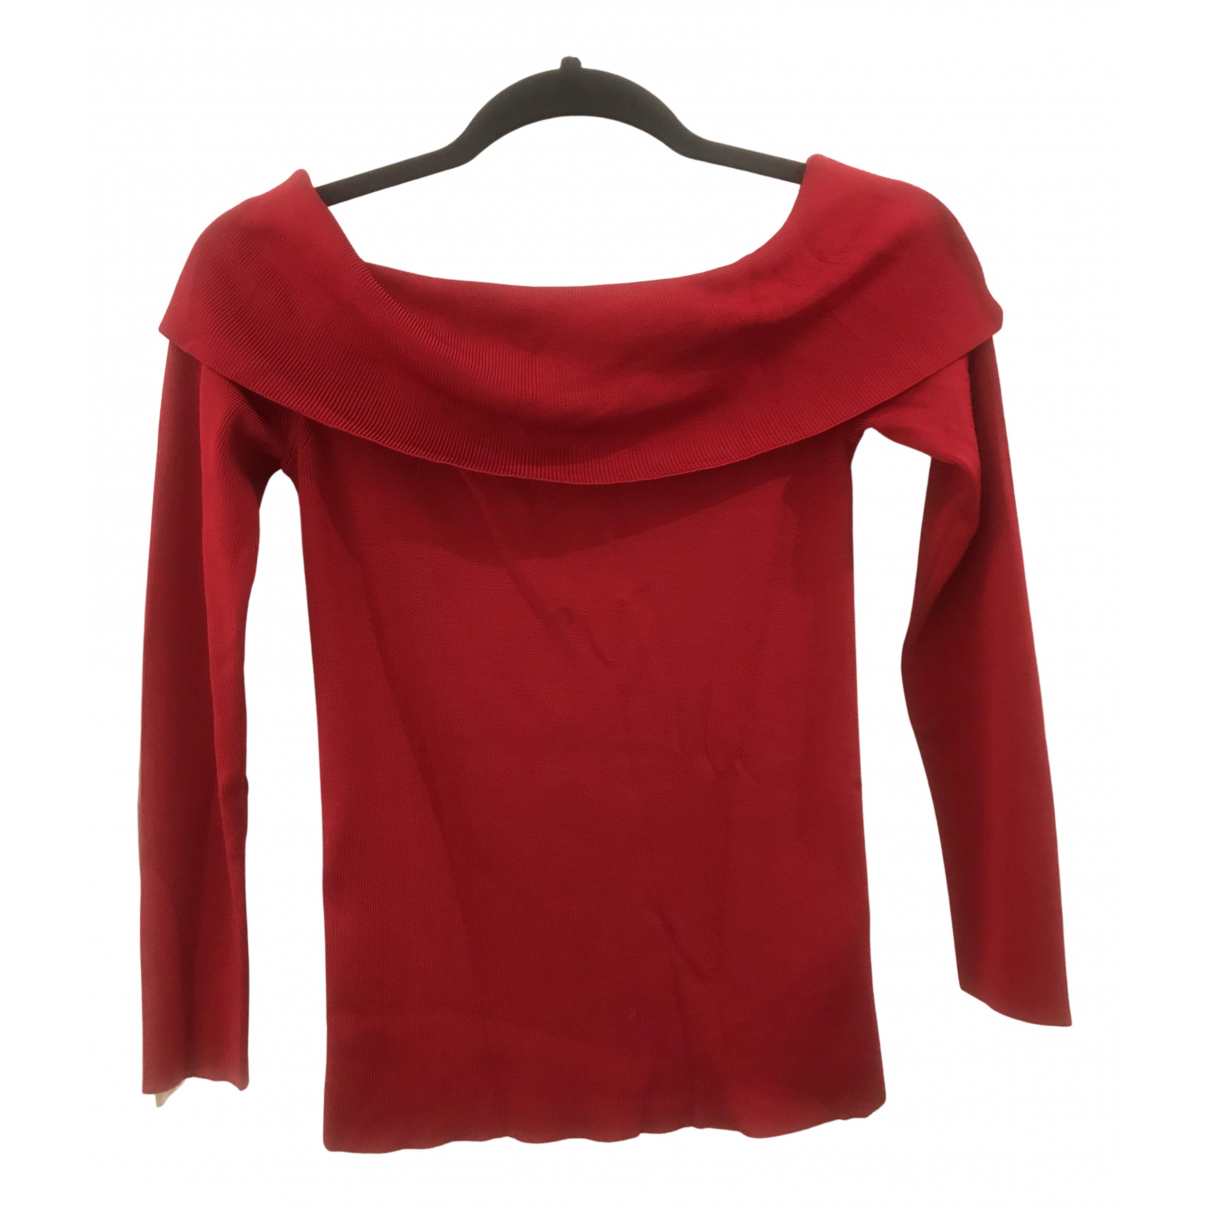 Reiss N Red  top for Women XS International